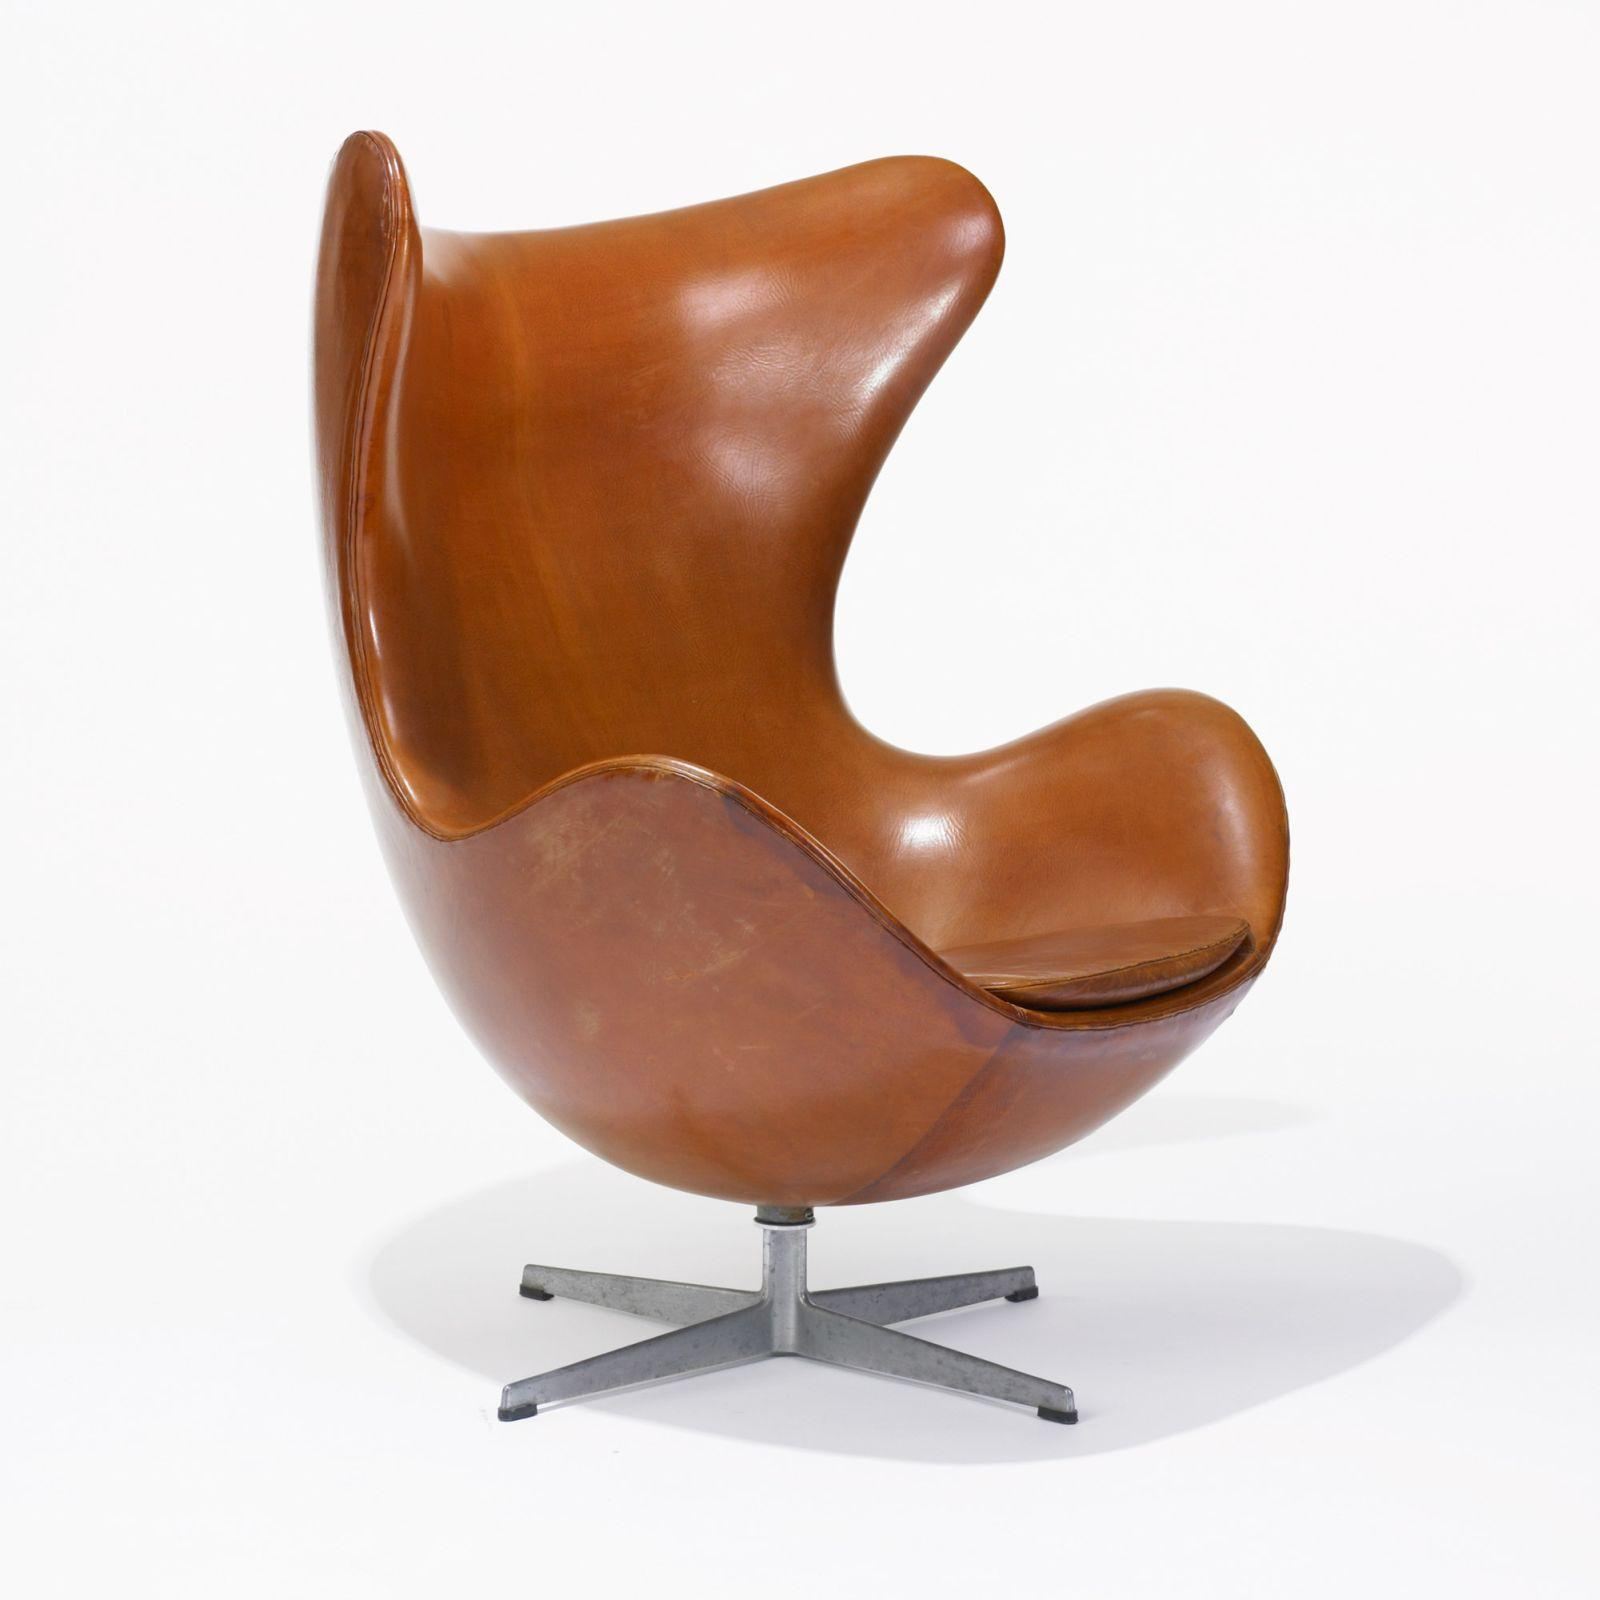 Arne jacobsen egg chair leather - Arne Jacobsen Egg Chair Leather 2